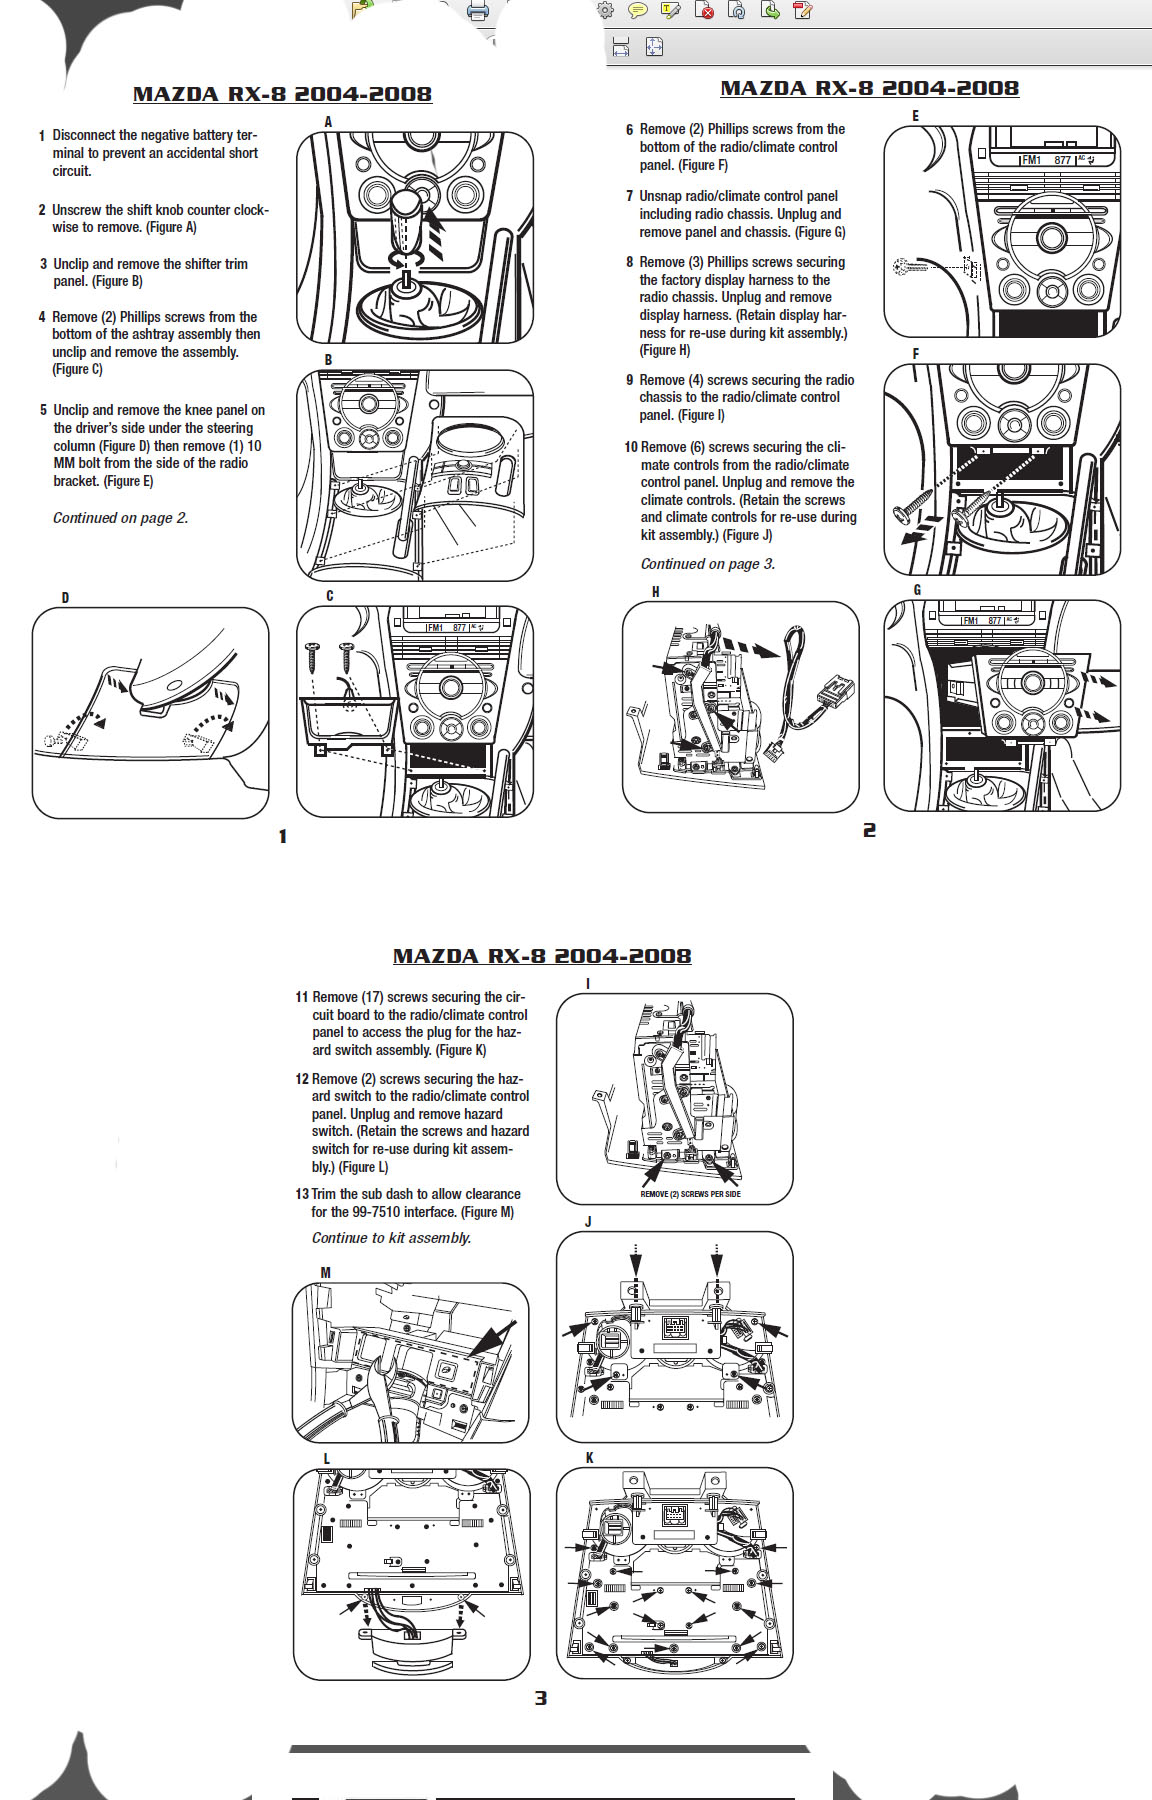 2004 mazda 3installation instructions. Black Bedroom Furniture Sets. Home Design Ideas